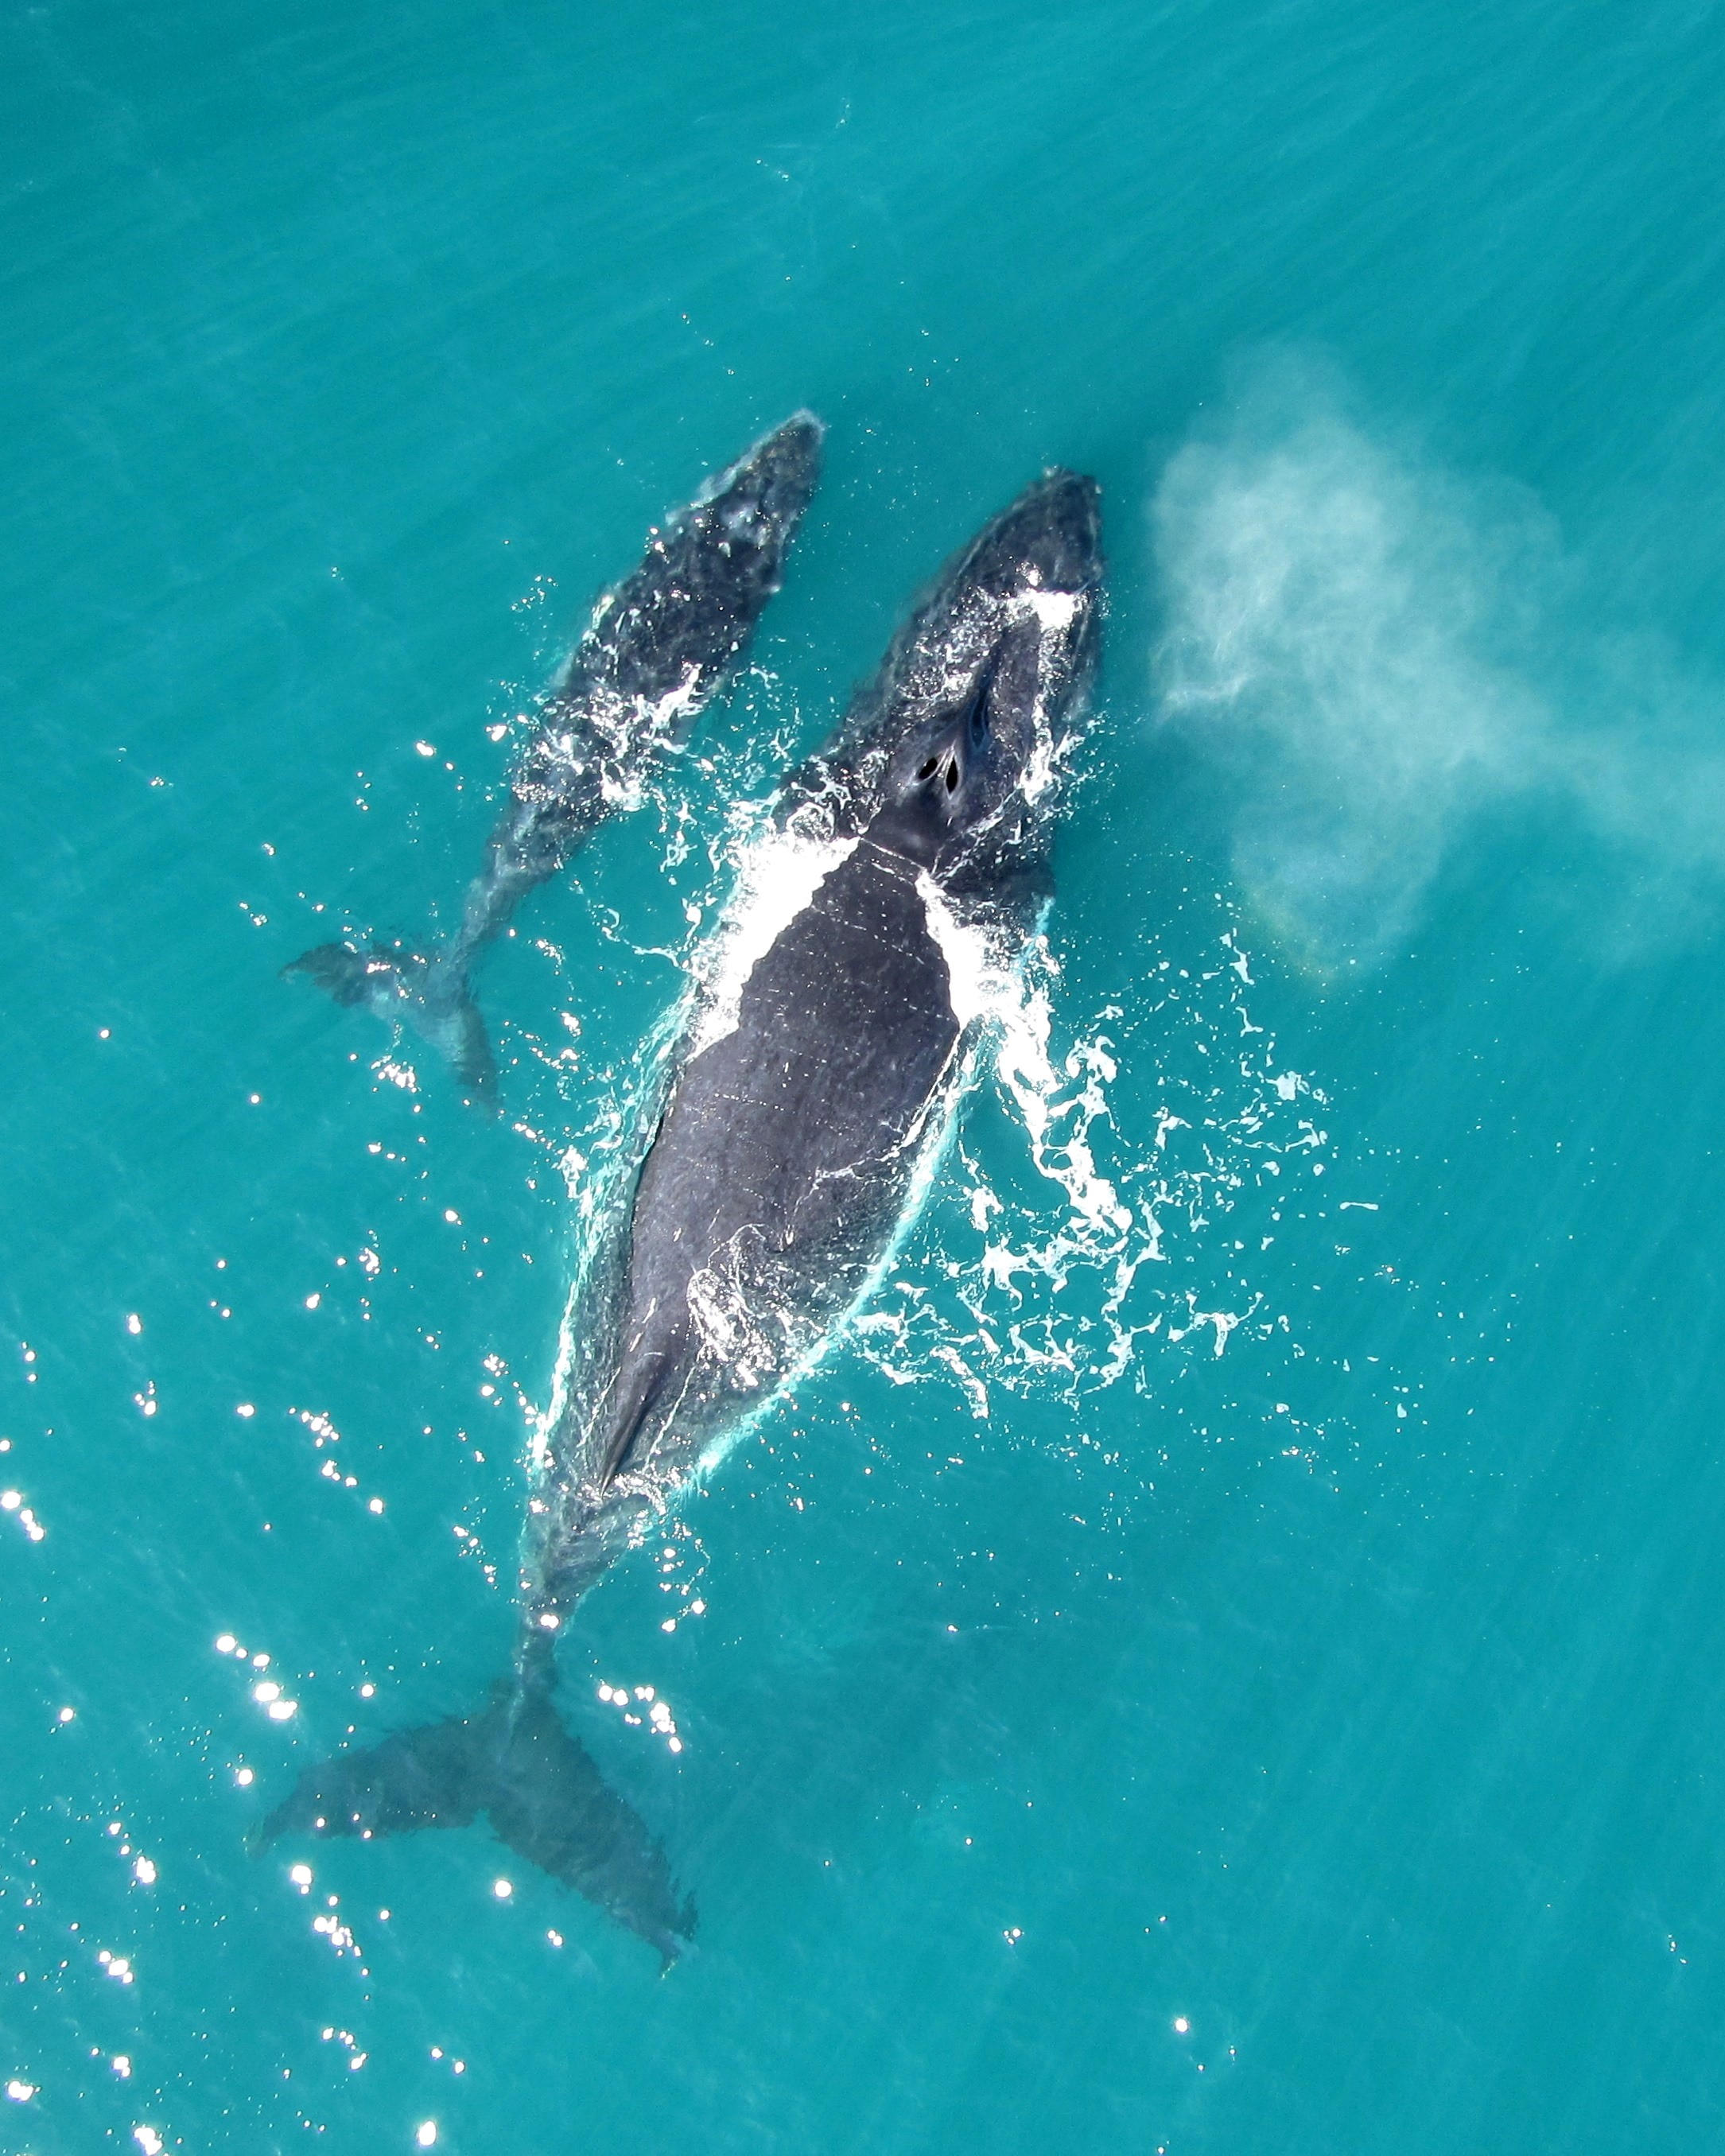 """To avoid danger from killer whales, newborn humpback whales """"whisper"""" to their mothers, according to a new study by Aarhus University."""